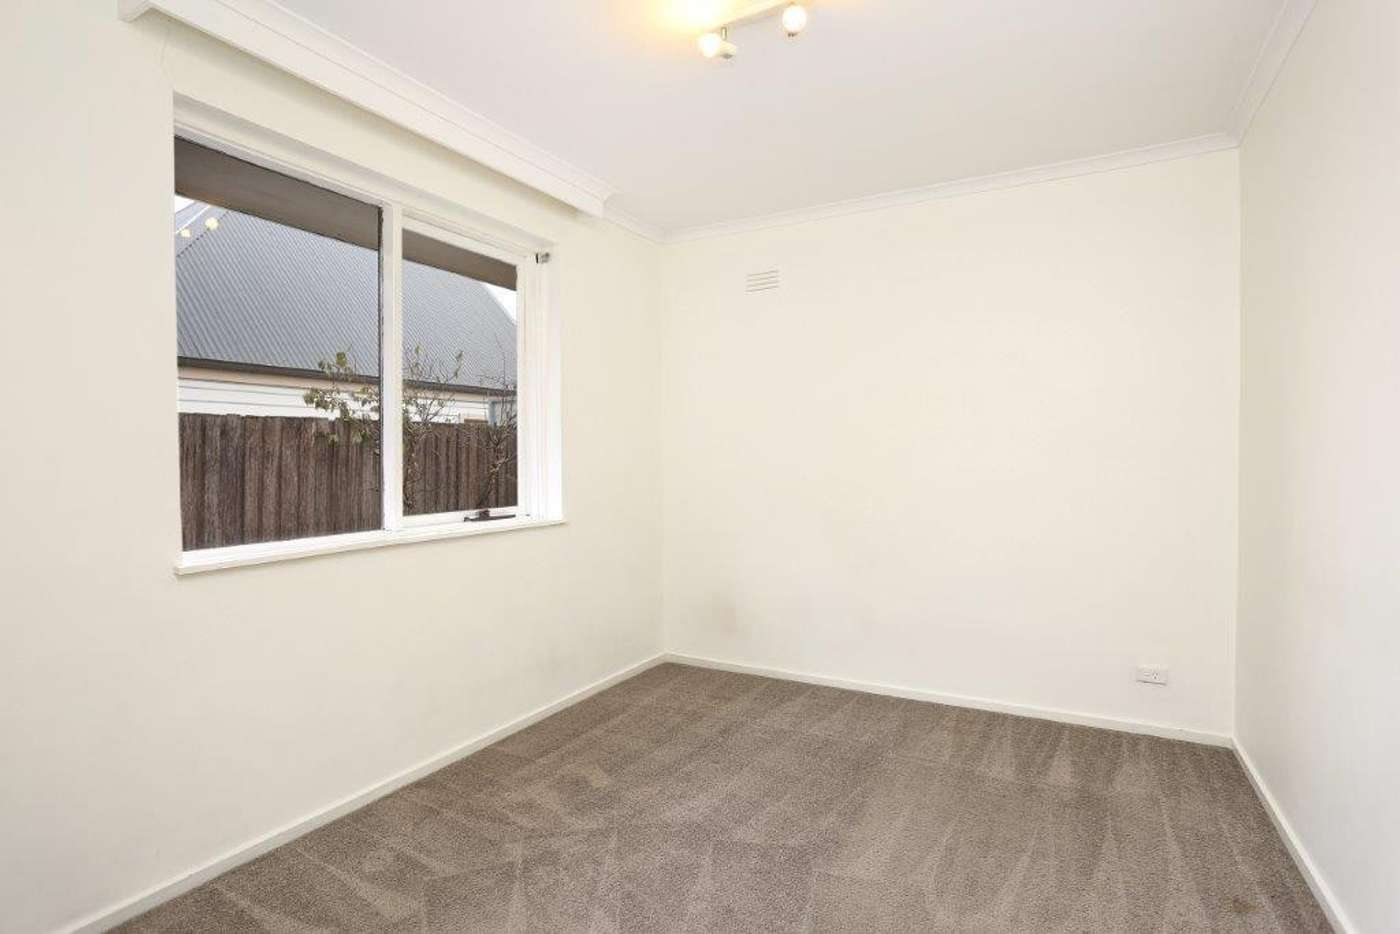 Sixth view of Homely townhouse listing, 7/39 Kennedy Street, Glenroy VIC 3046